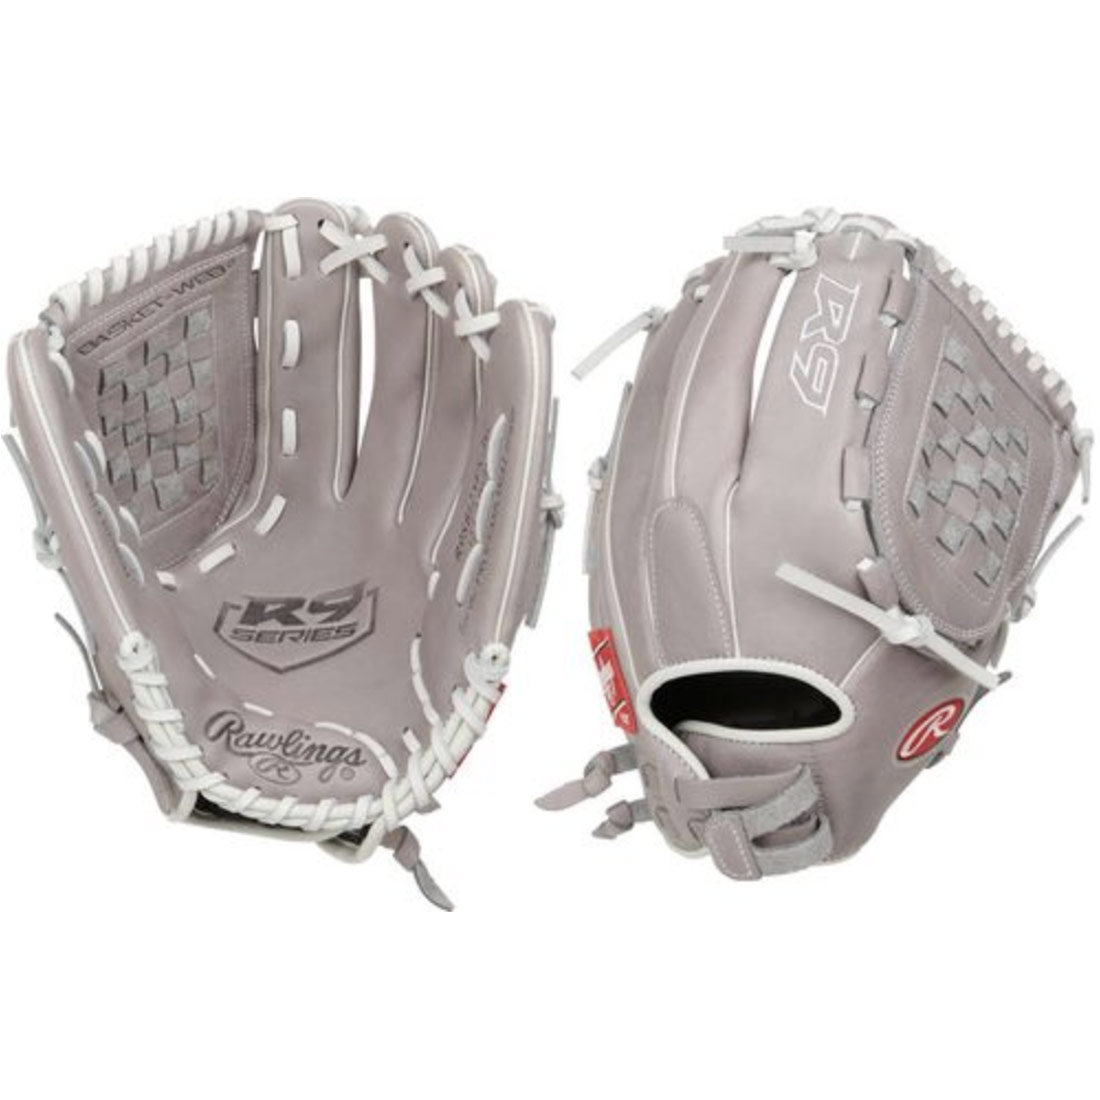 "Rawlings R9 Series Fastpitch Softball Glove 12.5"" R9SB125FS-3G"